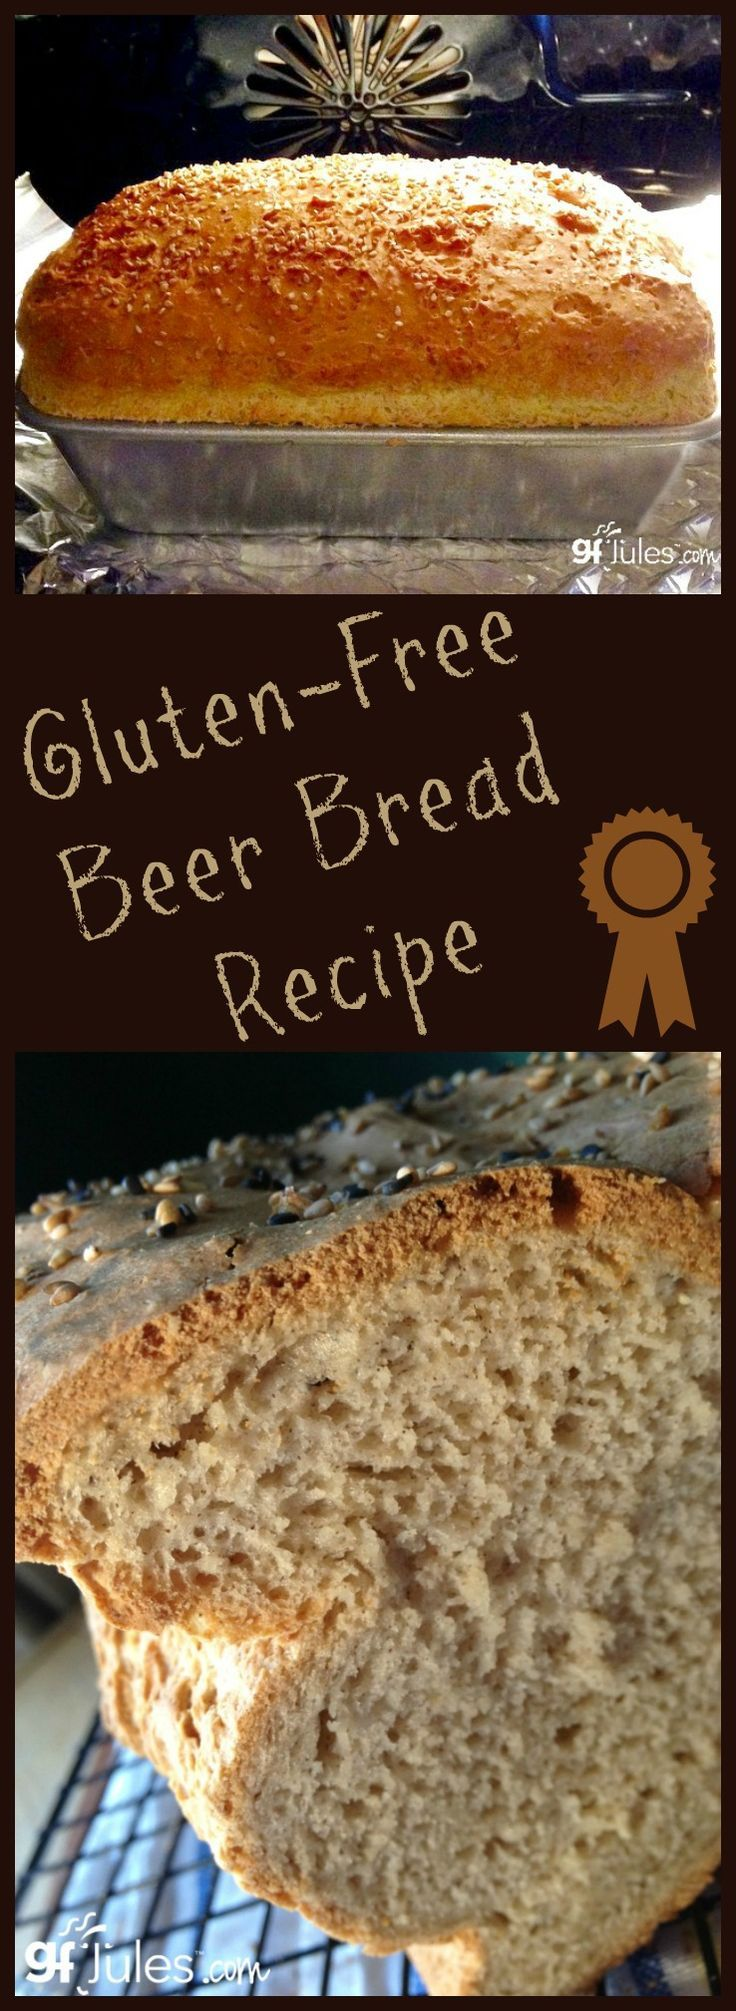 Gluten Free Beer Bread - this recipe makes soft, light and airy bread no one will believe is gluten-free and dairy-free! Use gingerale for alchol-free baking option. http://gfJules.com